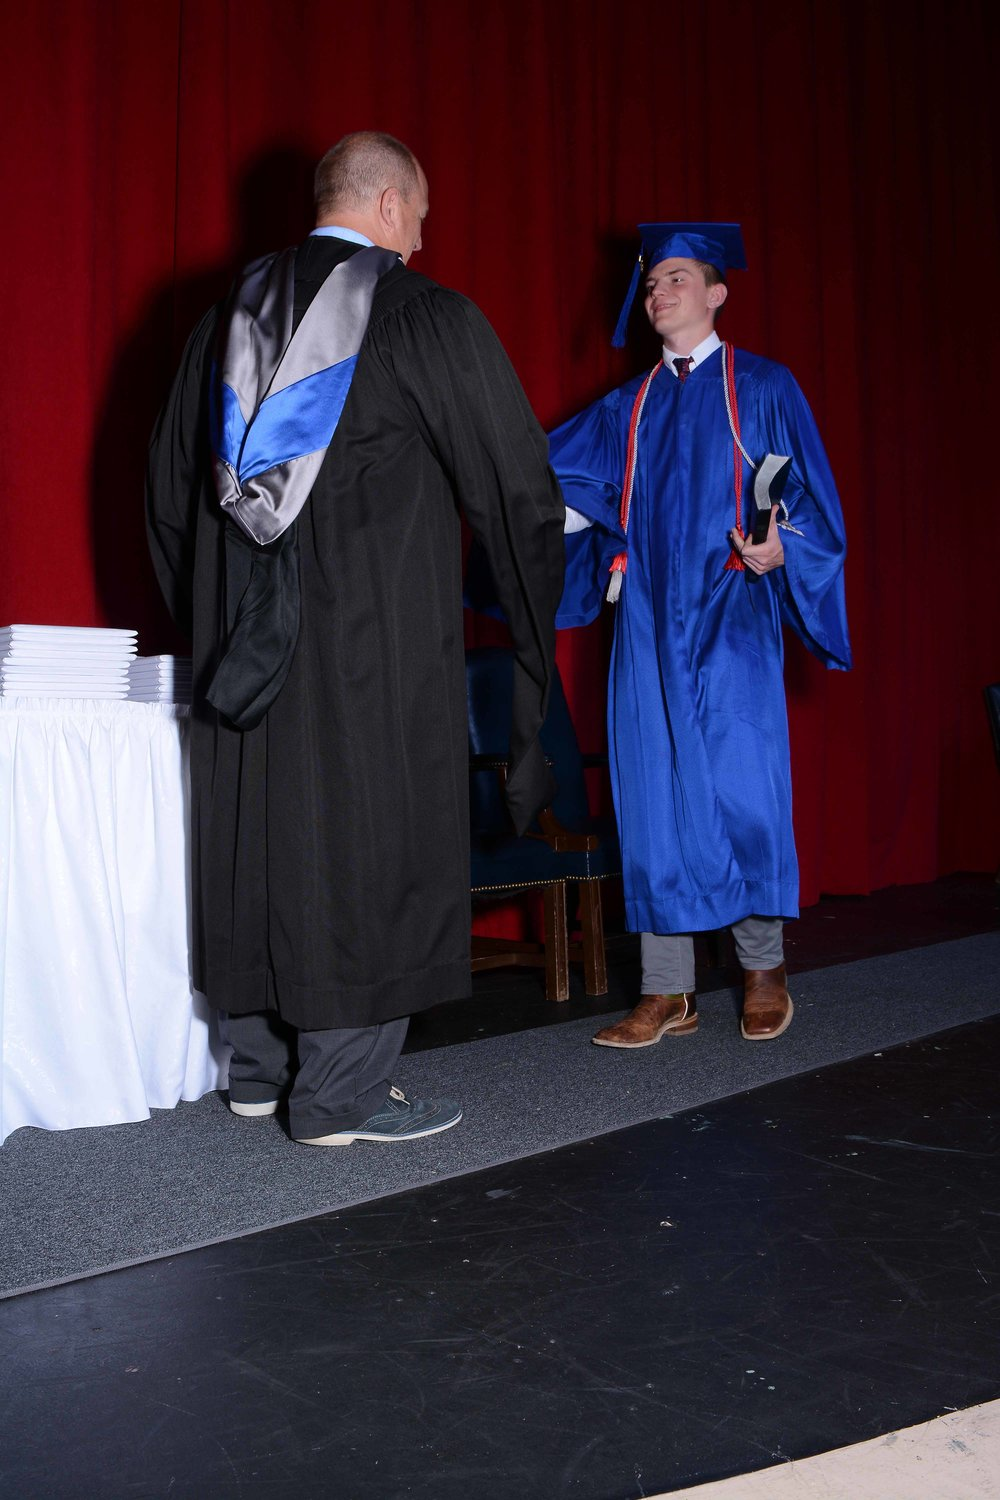 May14 Commencement68.jpg